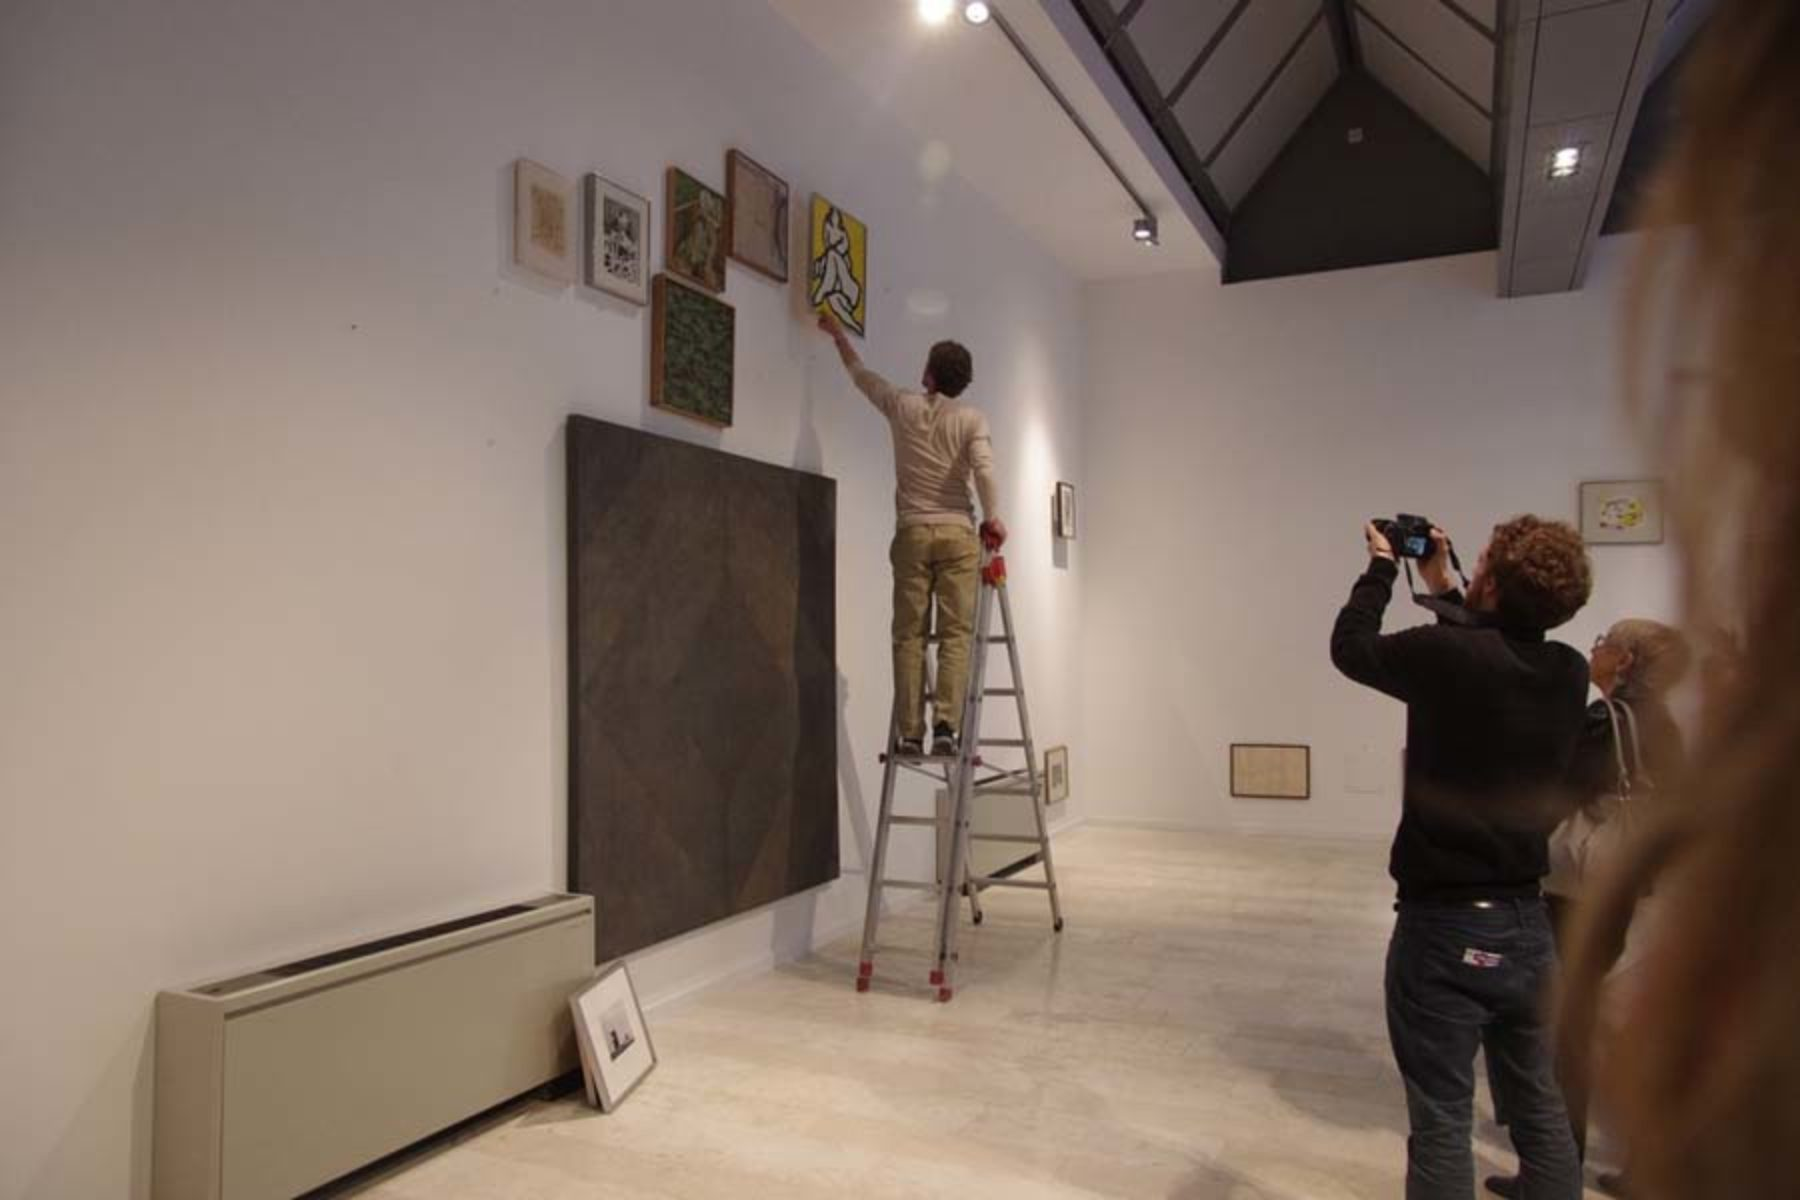 I. Moudov, 19 Problems, 18 Paintings, 2013, performance and site specific installation, 1 (2)